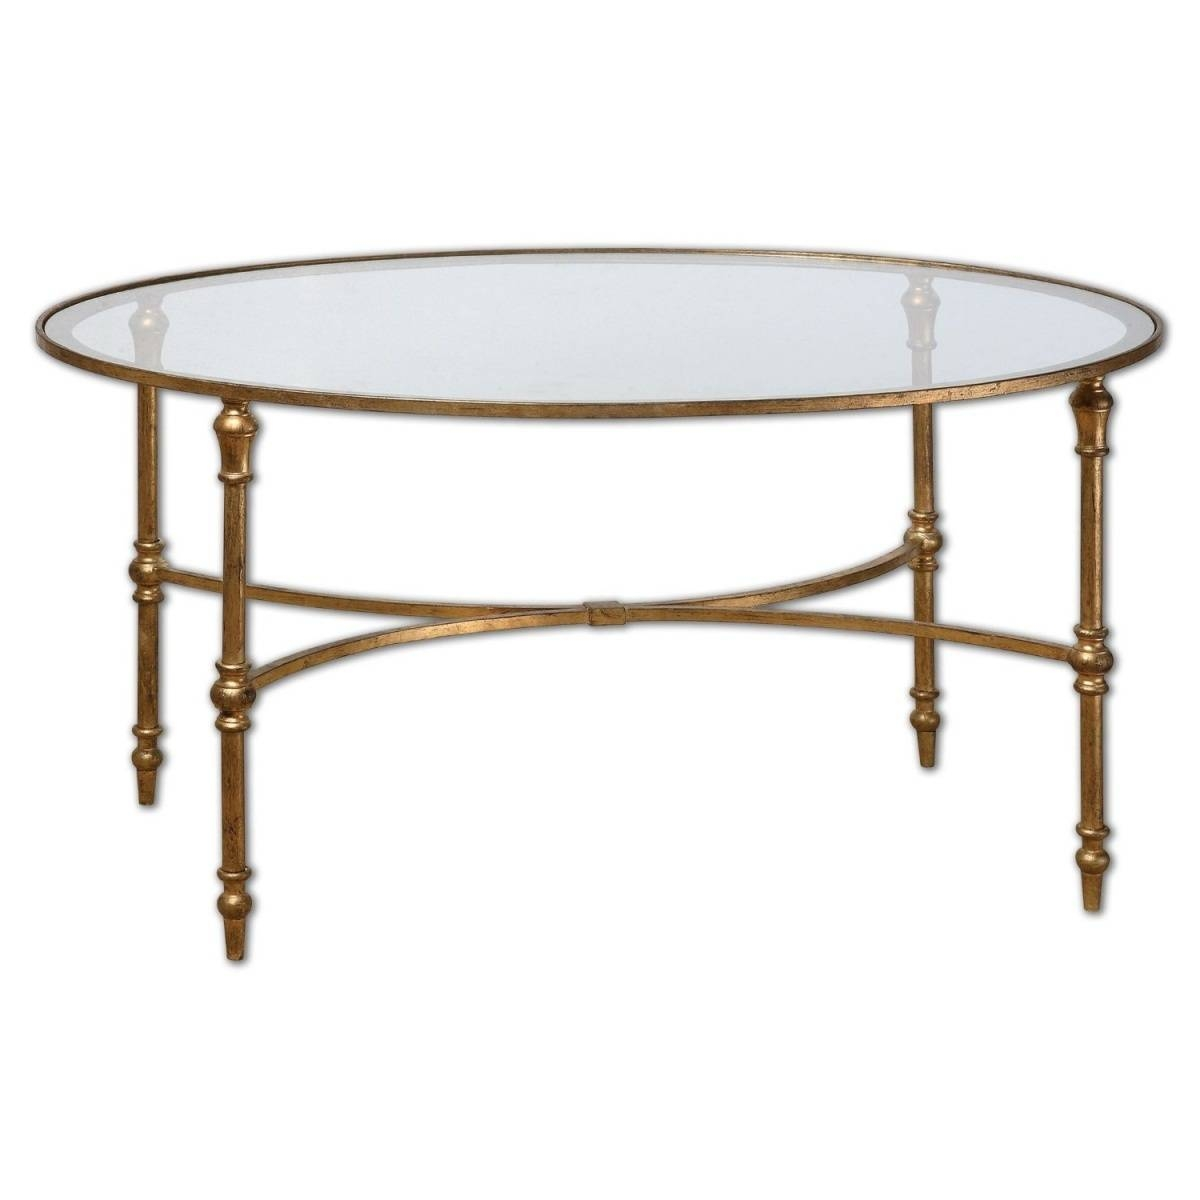 Oval Glass And Metal Coffee Tables | Coffee Tables Decoration with Oval Glass Coffee Tables (Image 20 of 30)